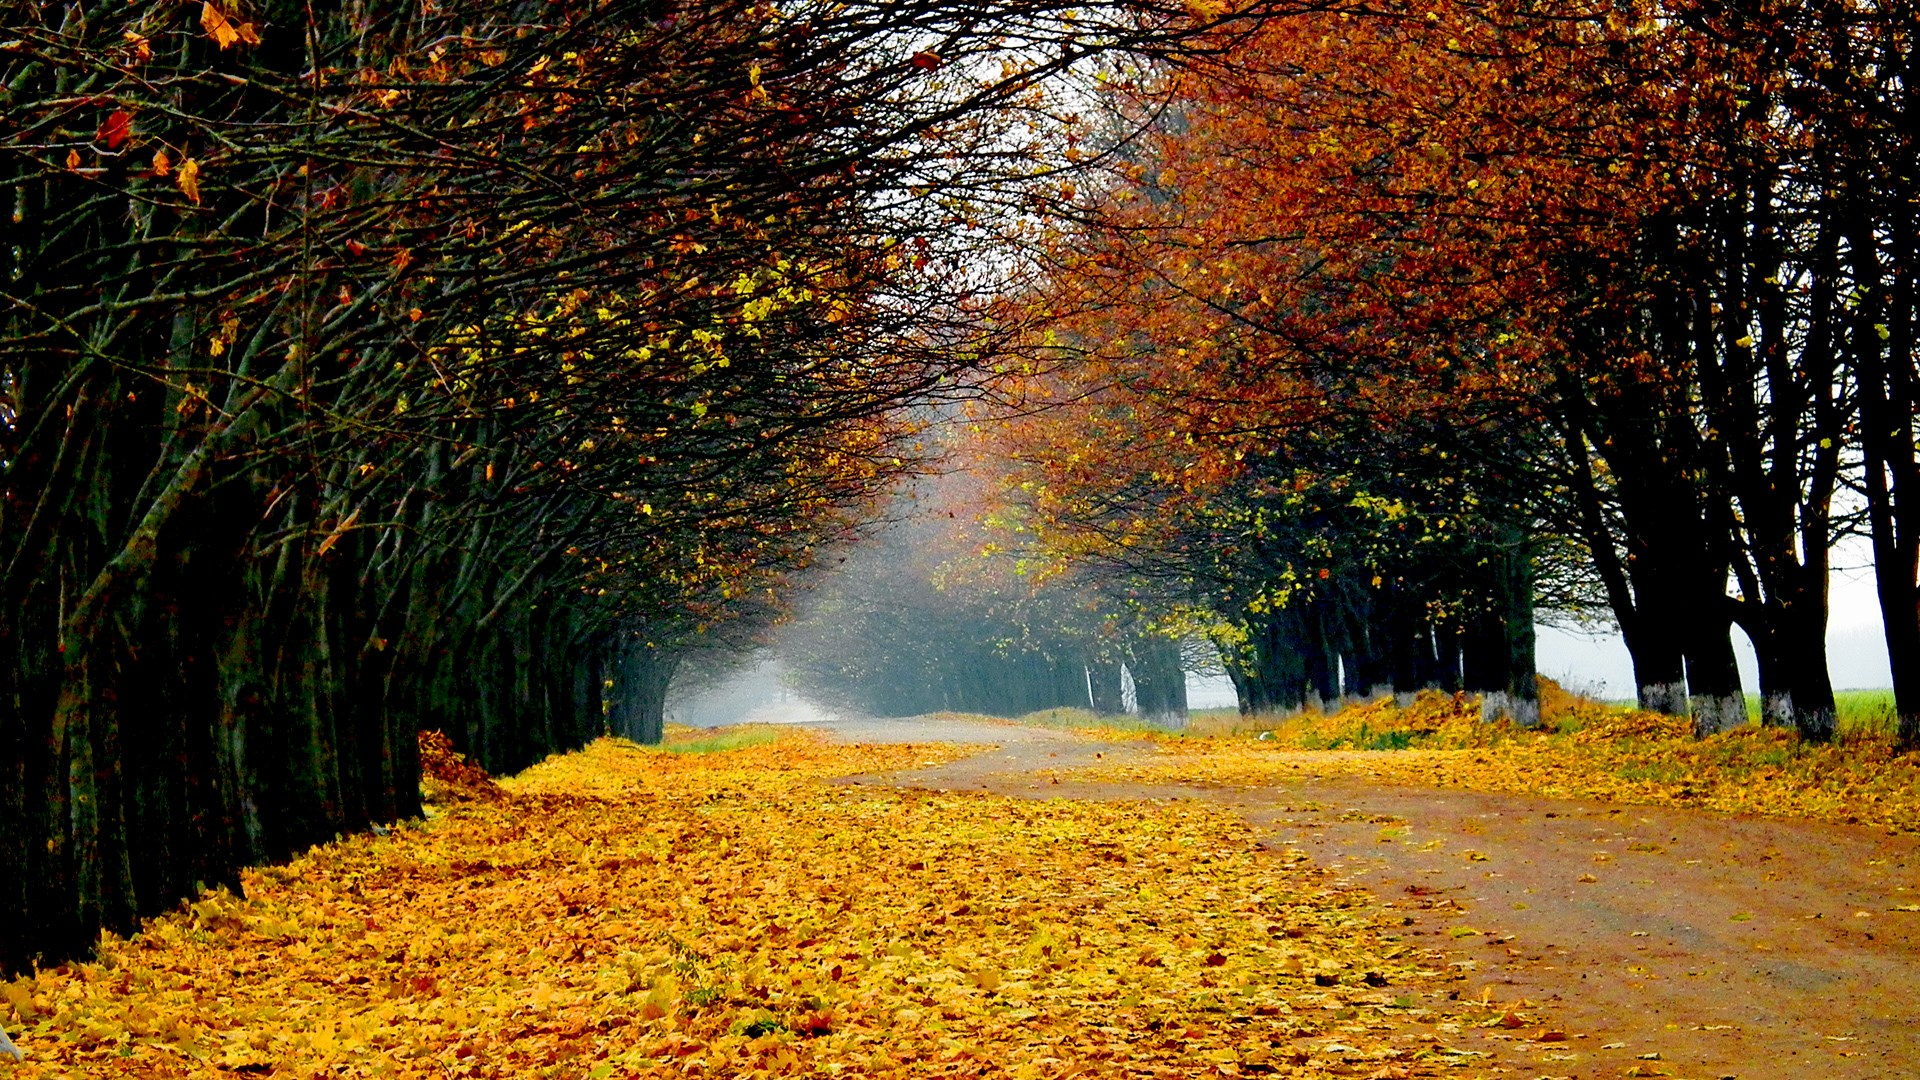 fall-full-hd-1920x1080-wallpaper-wp3405359